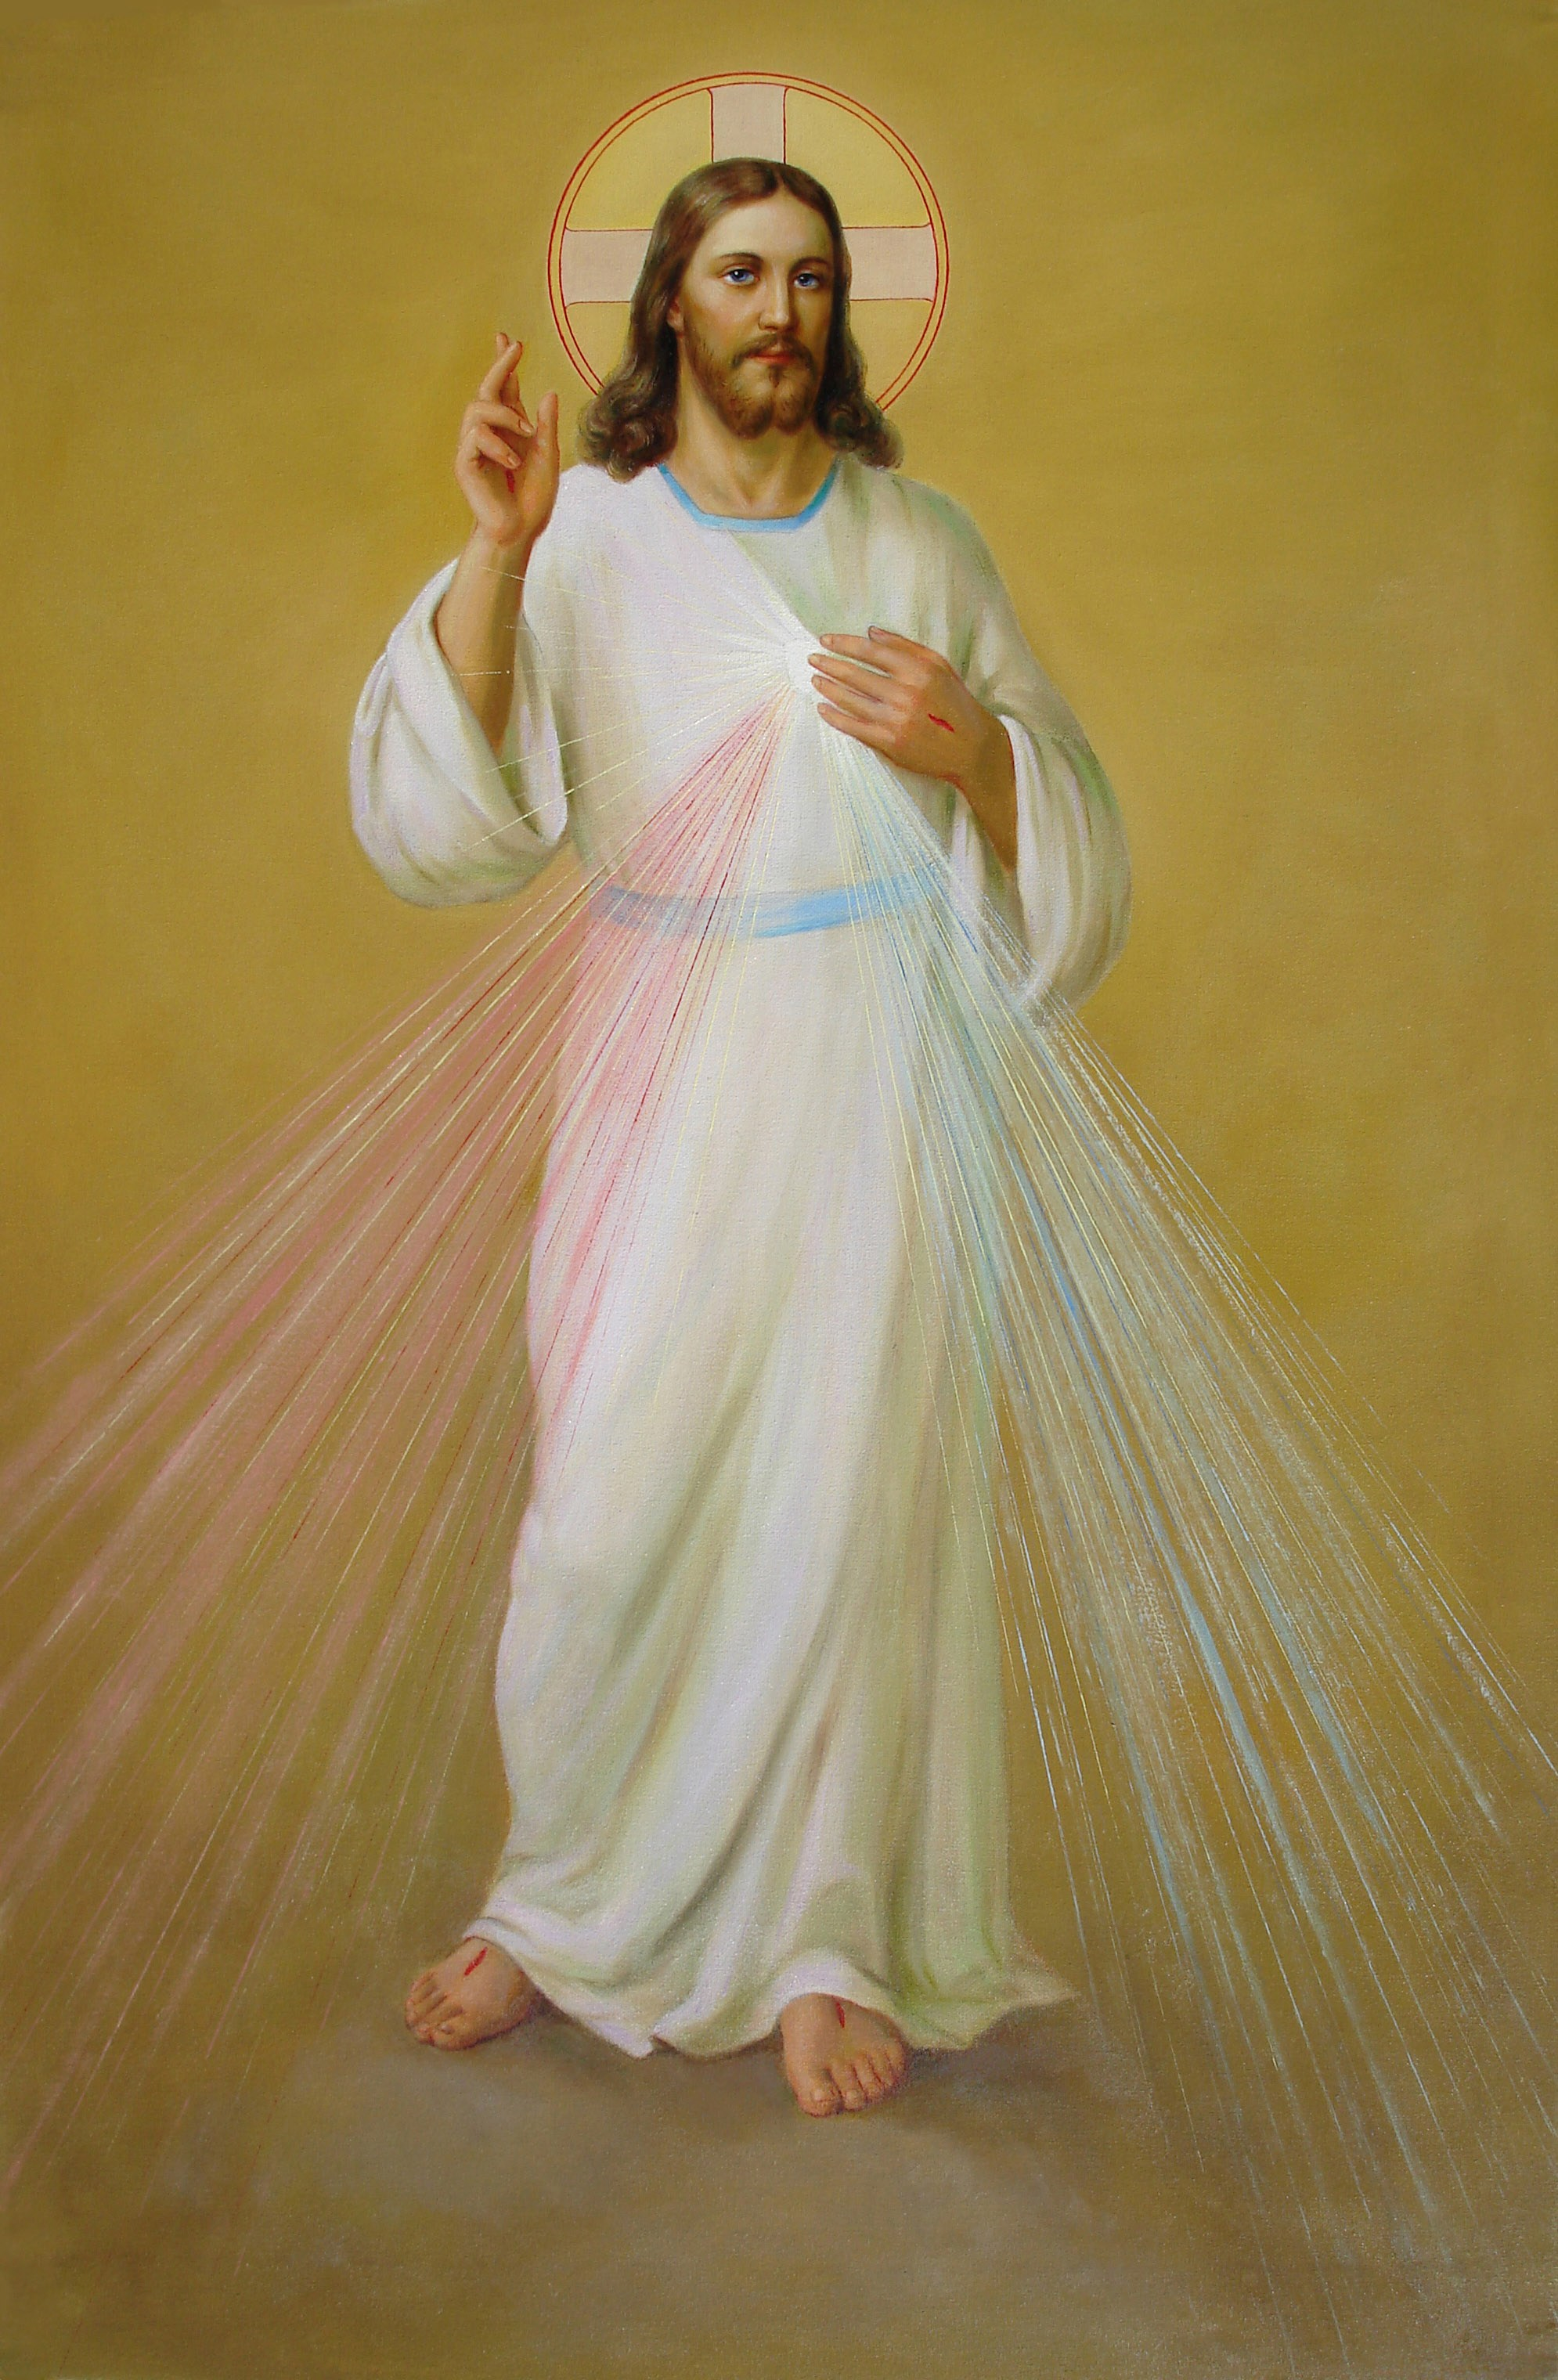 CONSECRATION TOTHE IMMACULATE HEART OF MARY